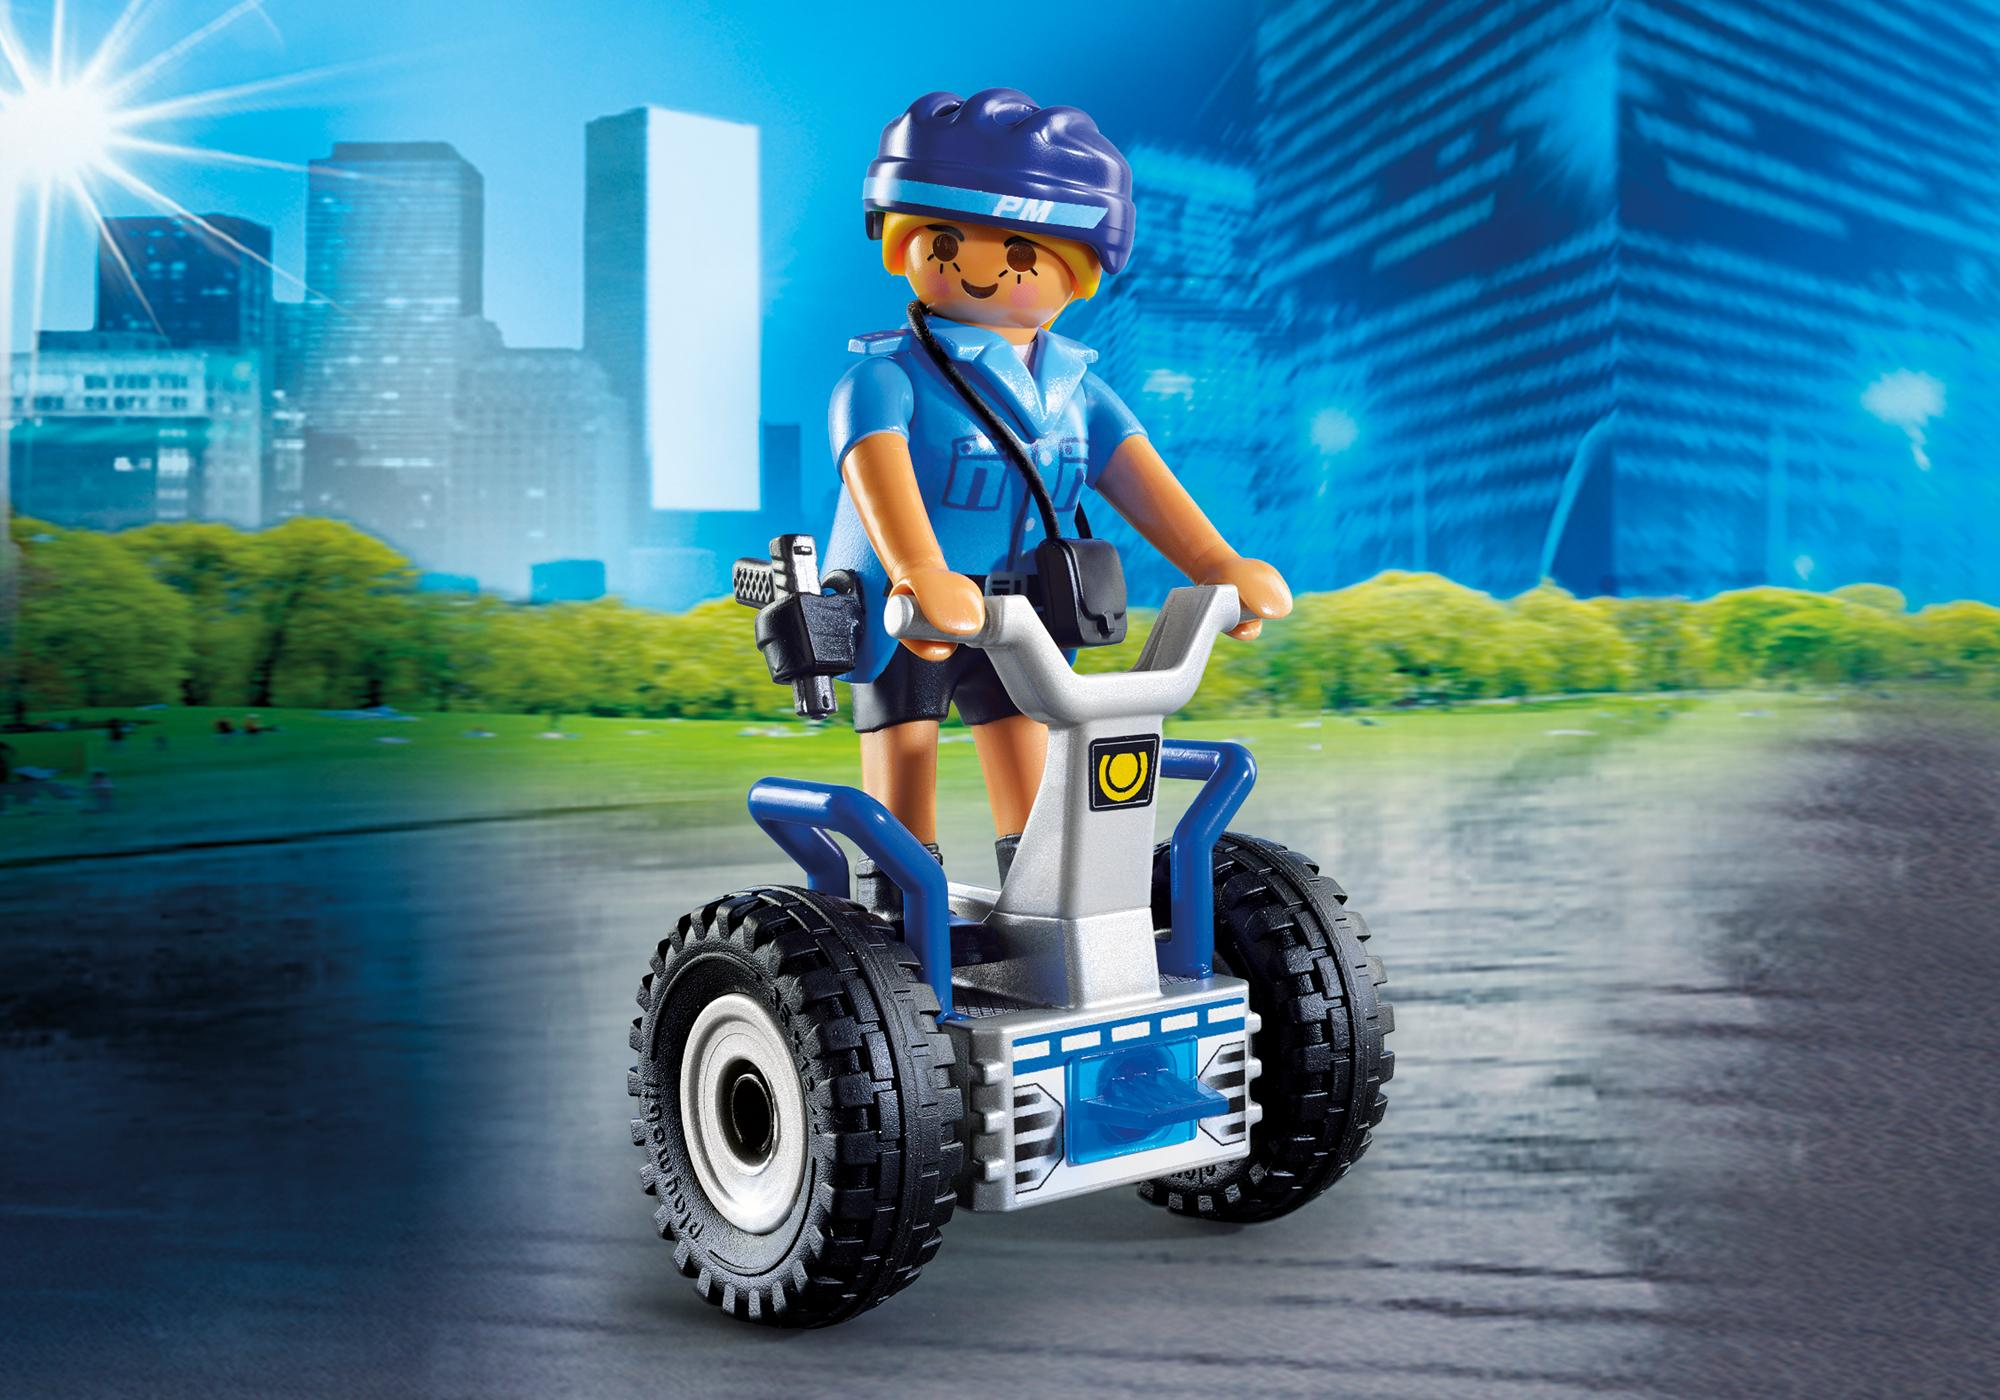 http://media.playmobil.com/i/playmobil/6877_product_detail/Policewoman with Balance Racer